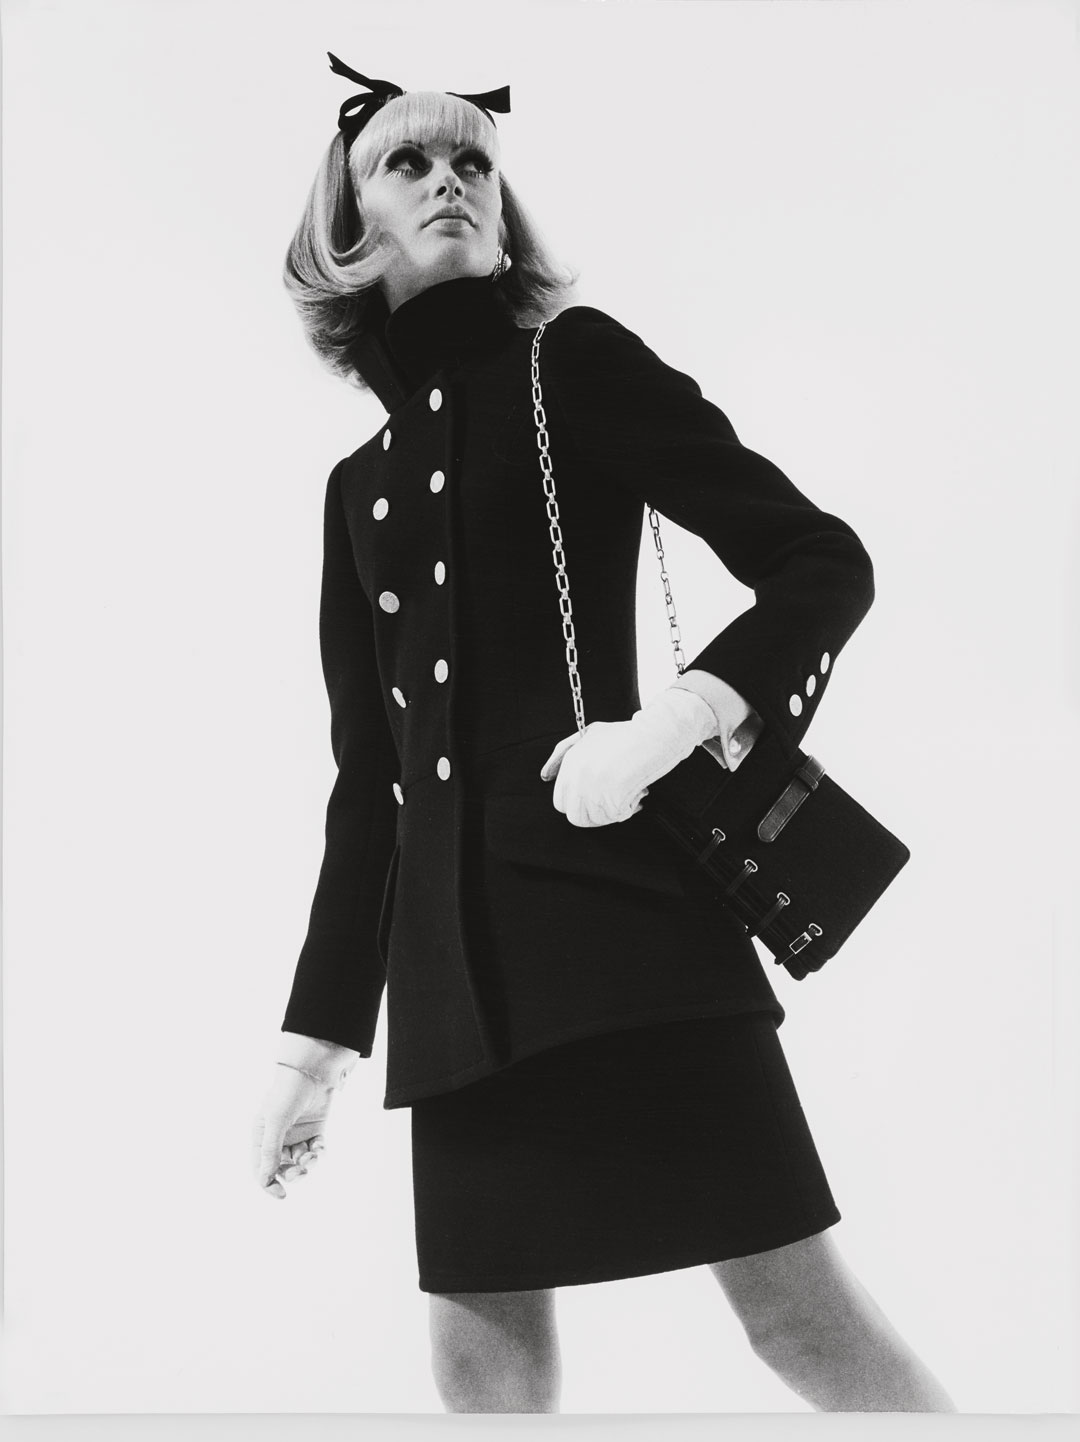 Suede 'book-bag', worn with a cocktail suit, Autumn/Winter 1967 haute couture collection. Photograph Peter Caine